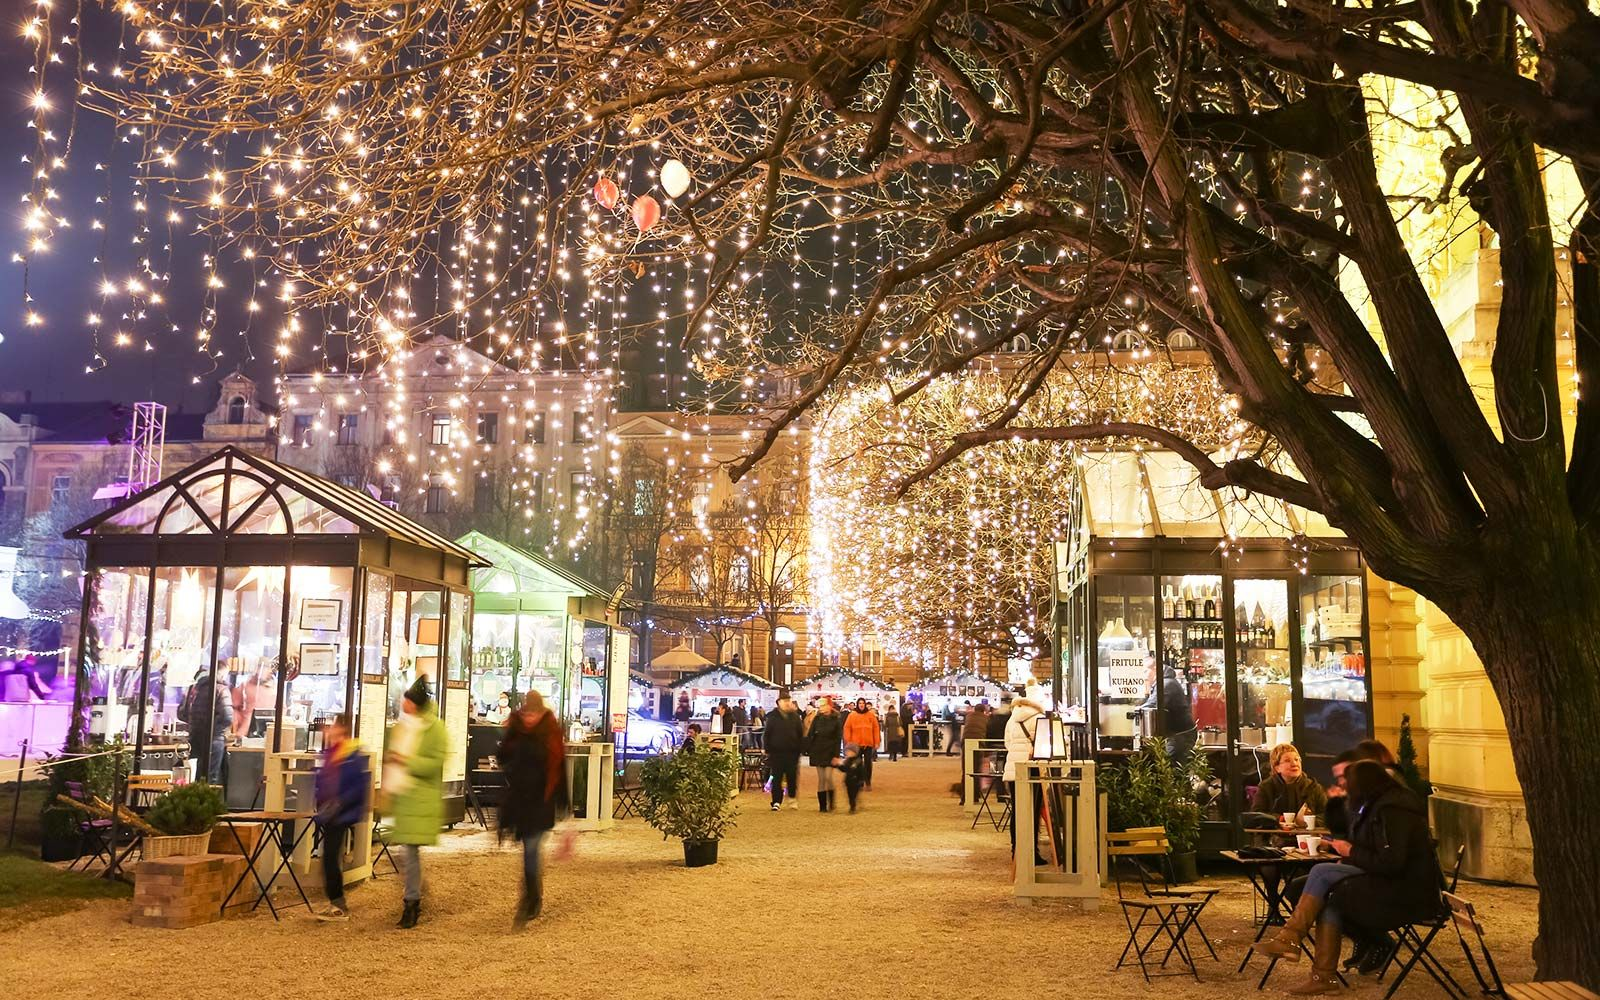 This Magical Christmas Market Was Voted Europe S Best For The Third Straight Year The Market Christmas Markets Europe Christmas Market Best Christmas Markets